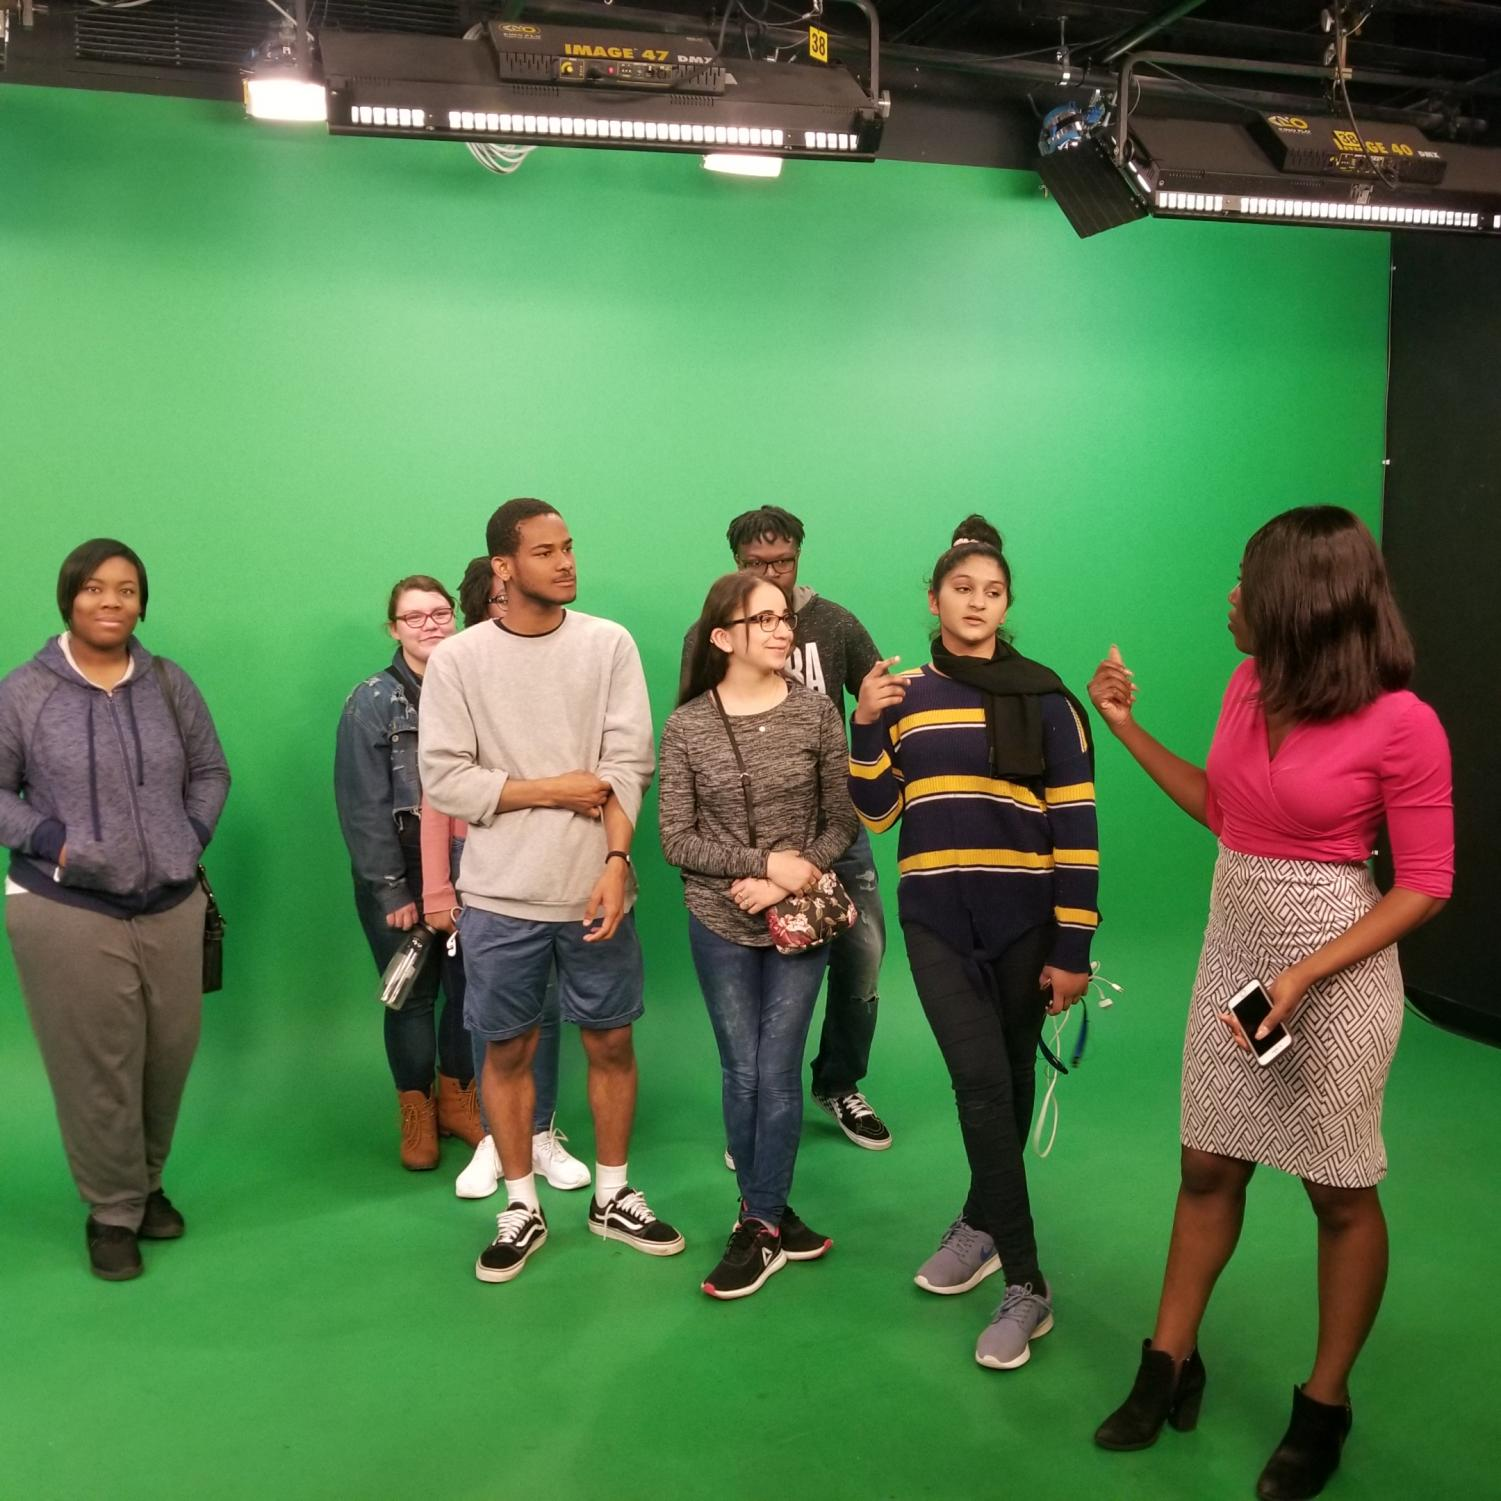 The+group+on+the+green+screen+where+the+meteorologist+works.